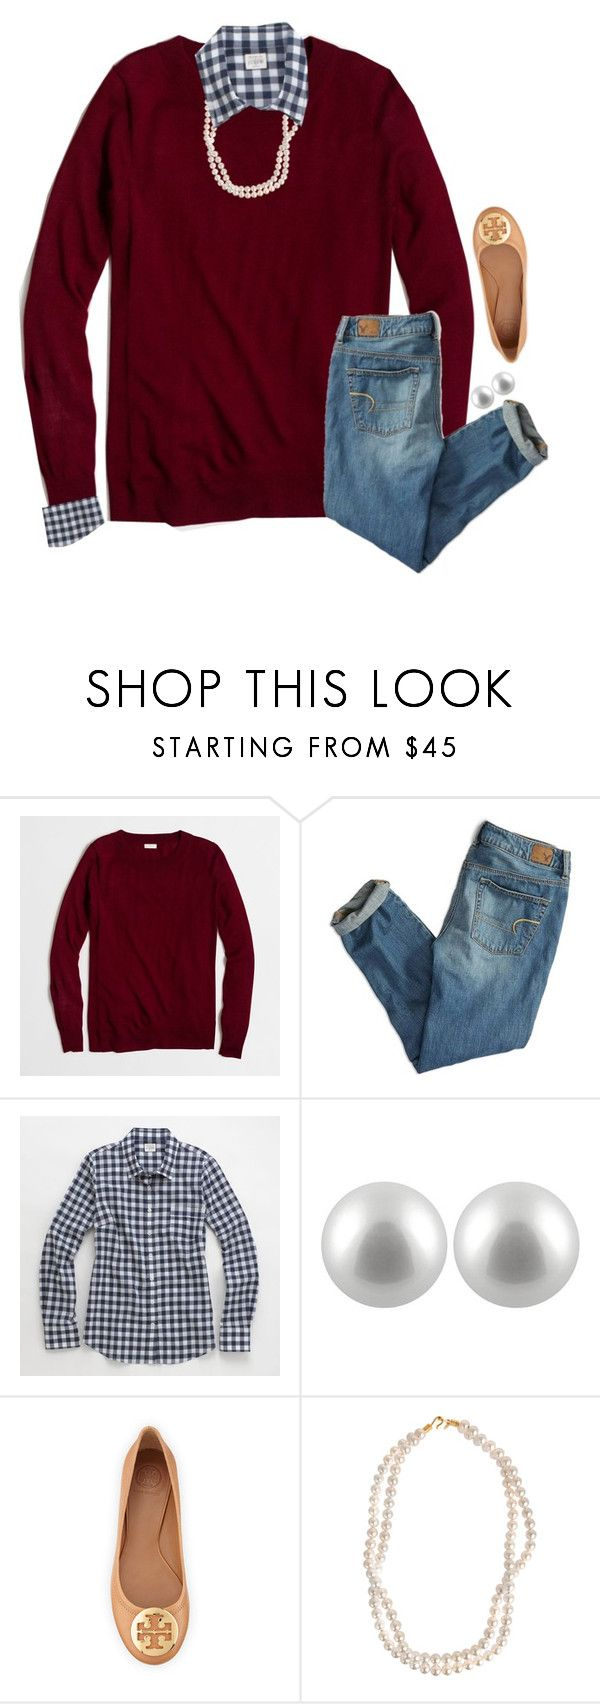 """Thanks for 700!!"" by harpgirl913 ❤ liked on Polyvore featuring J.Crew, American Eagle Outfitters, Splendid Pearls, Tory Burch and STELLA McCARTNEY"